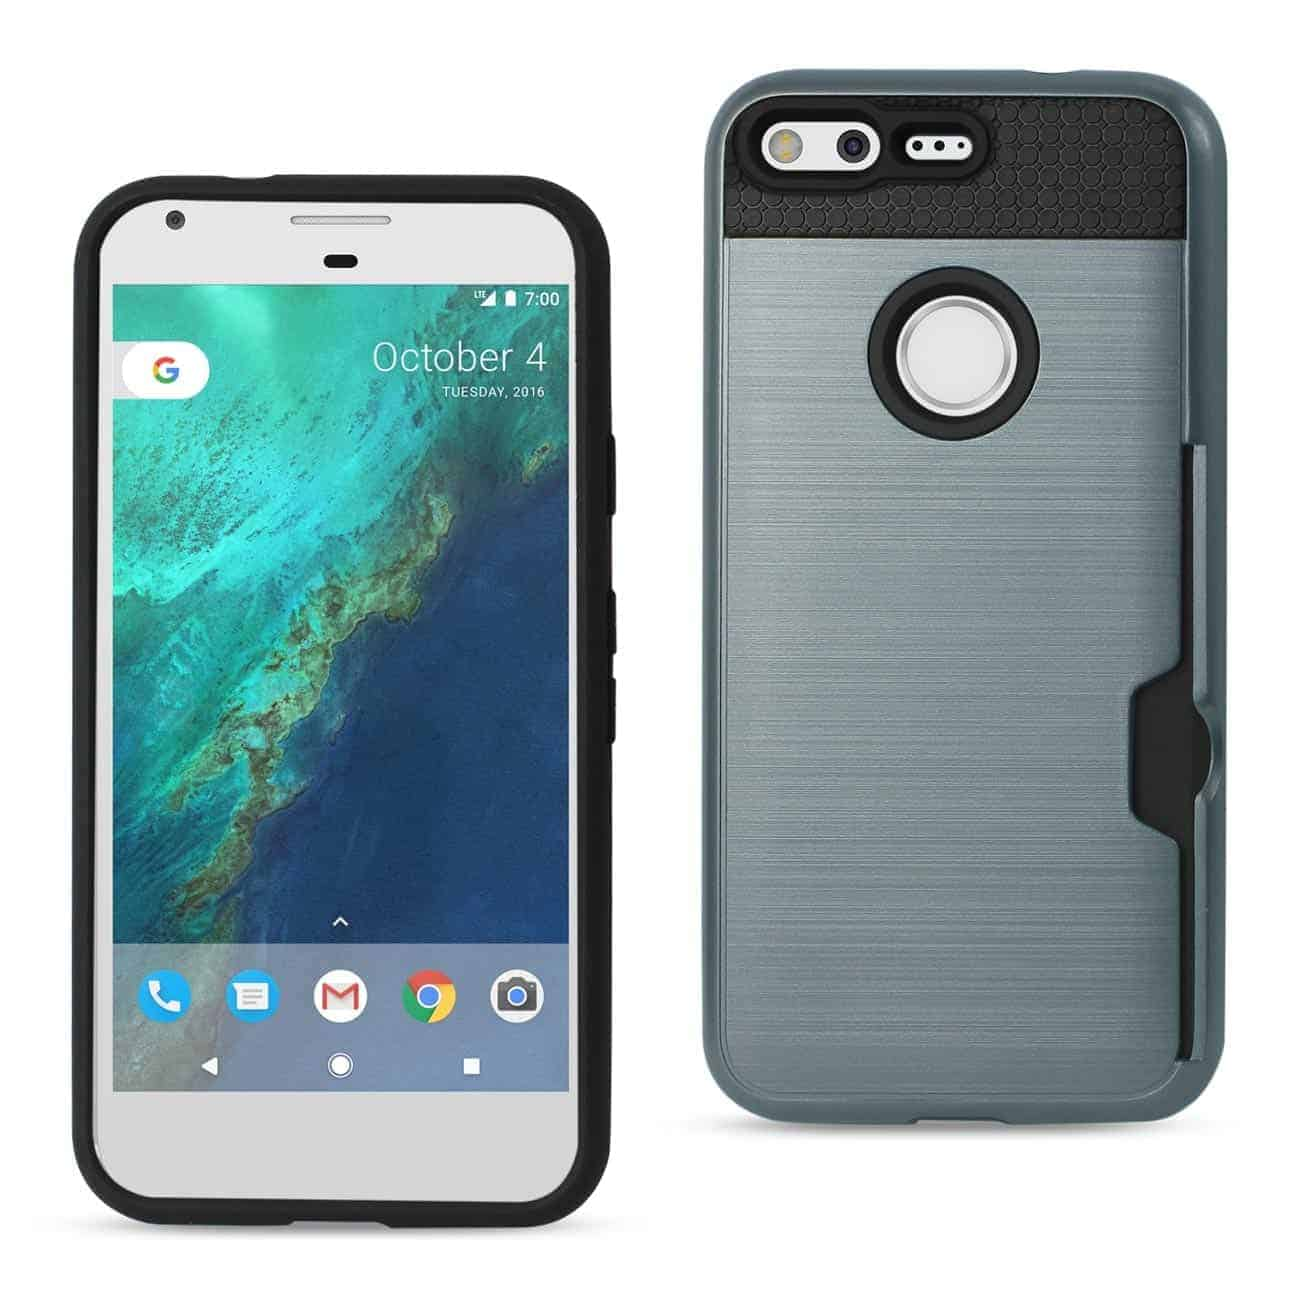 GOOGLE PIXEL SLIM ARMOR HYBRID CASE WITH CARD HOLDER IN NAVY